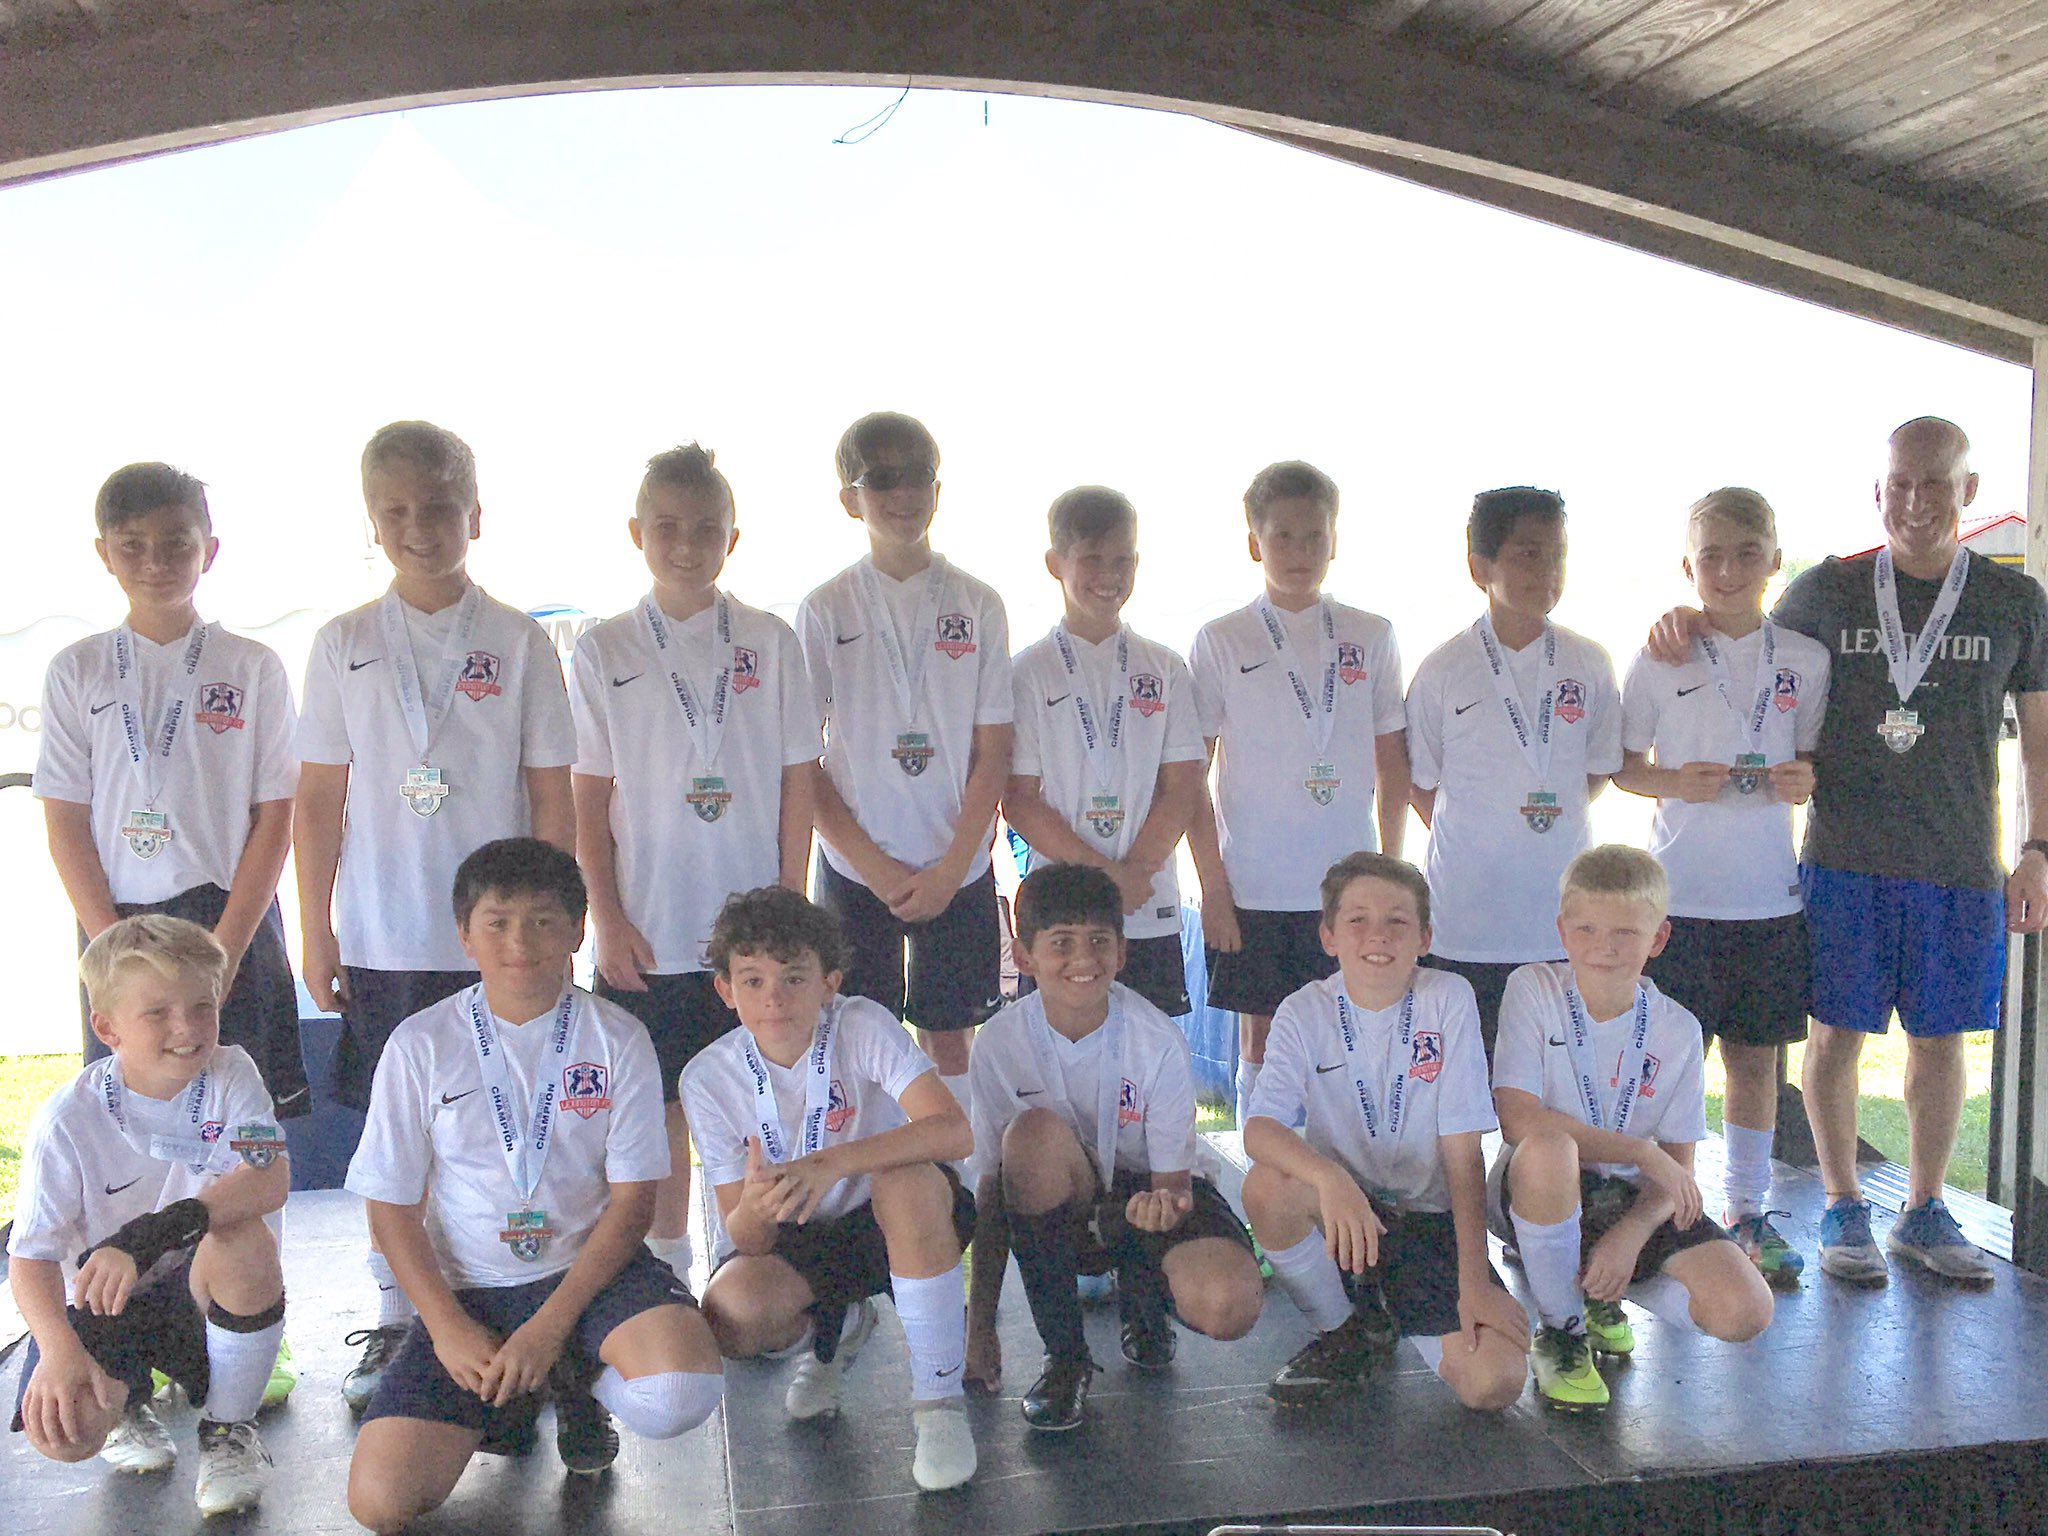 Lexington FC 2005 Boys Red, Party on the Pitch Champions!